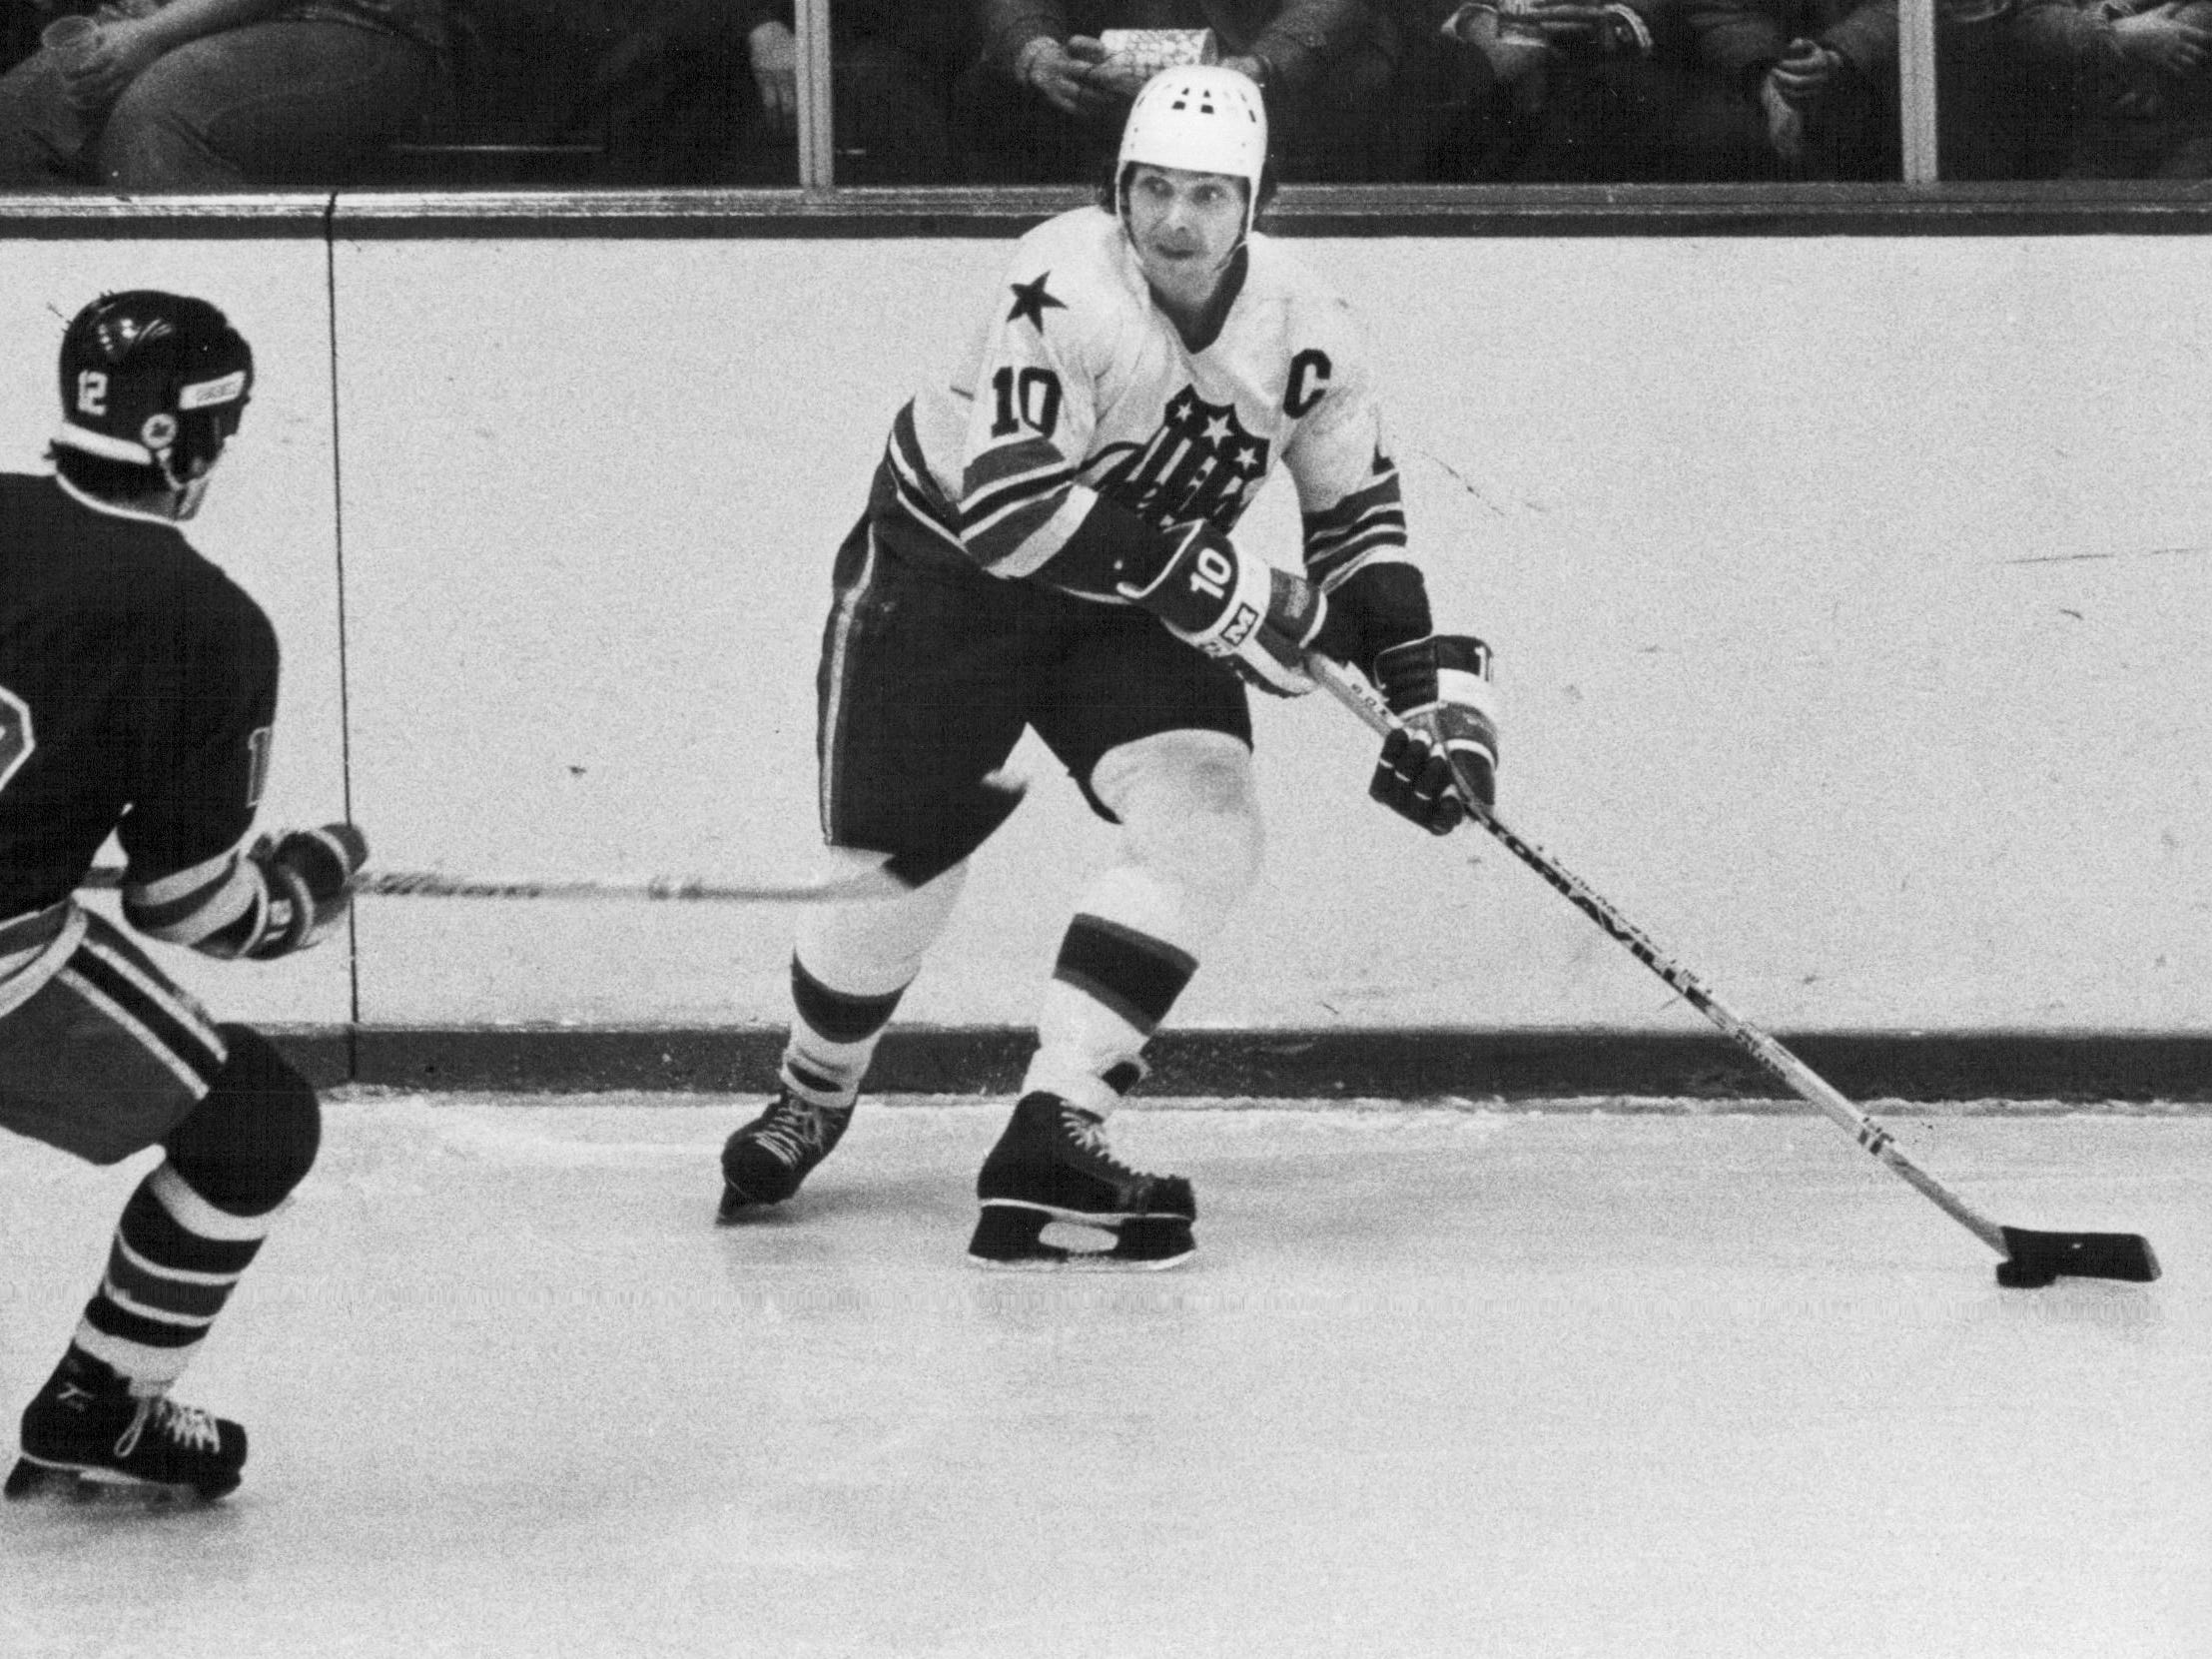 Hall of Famer Langdon fell in love with Amerks way before he got here